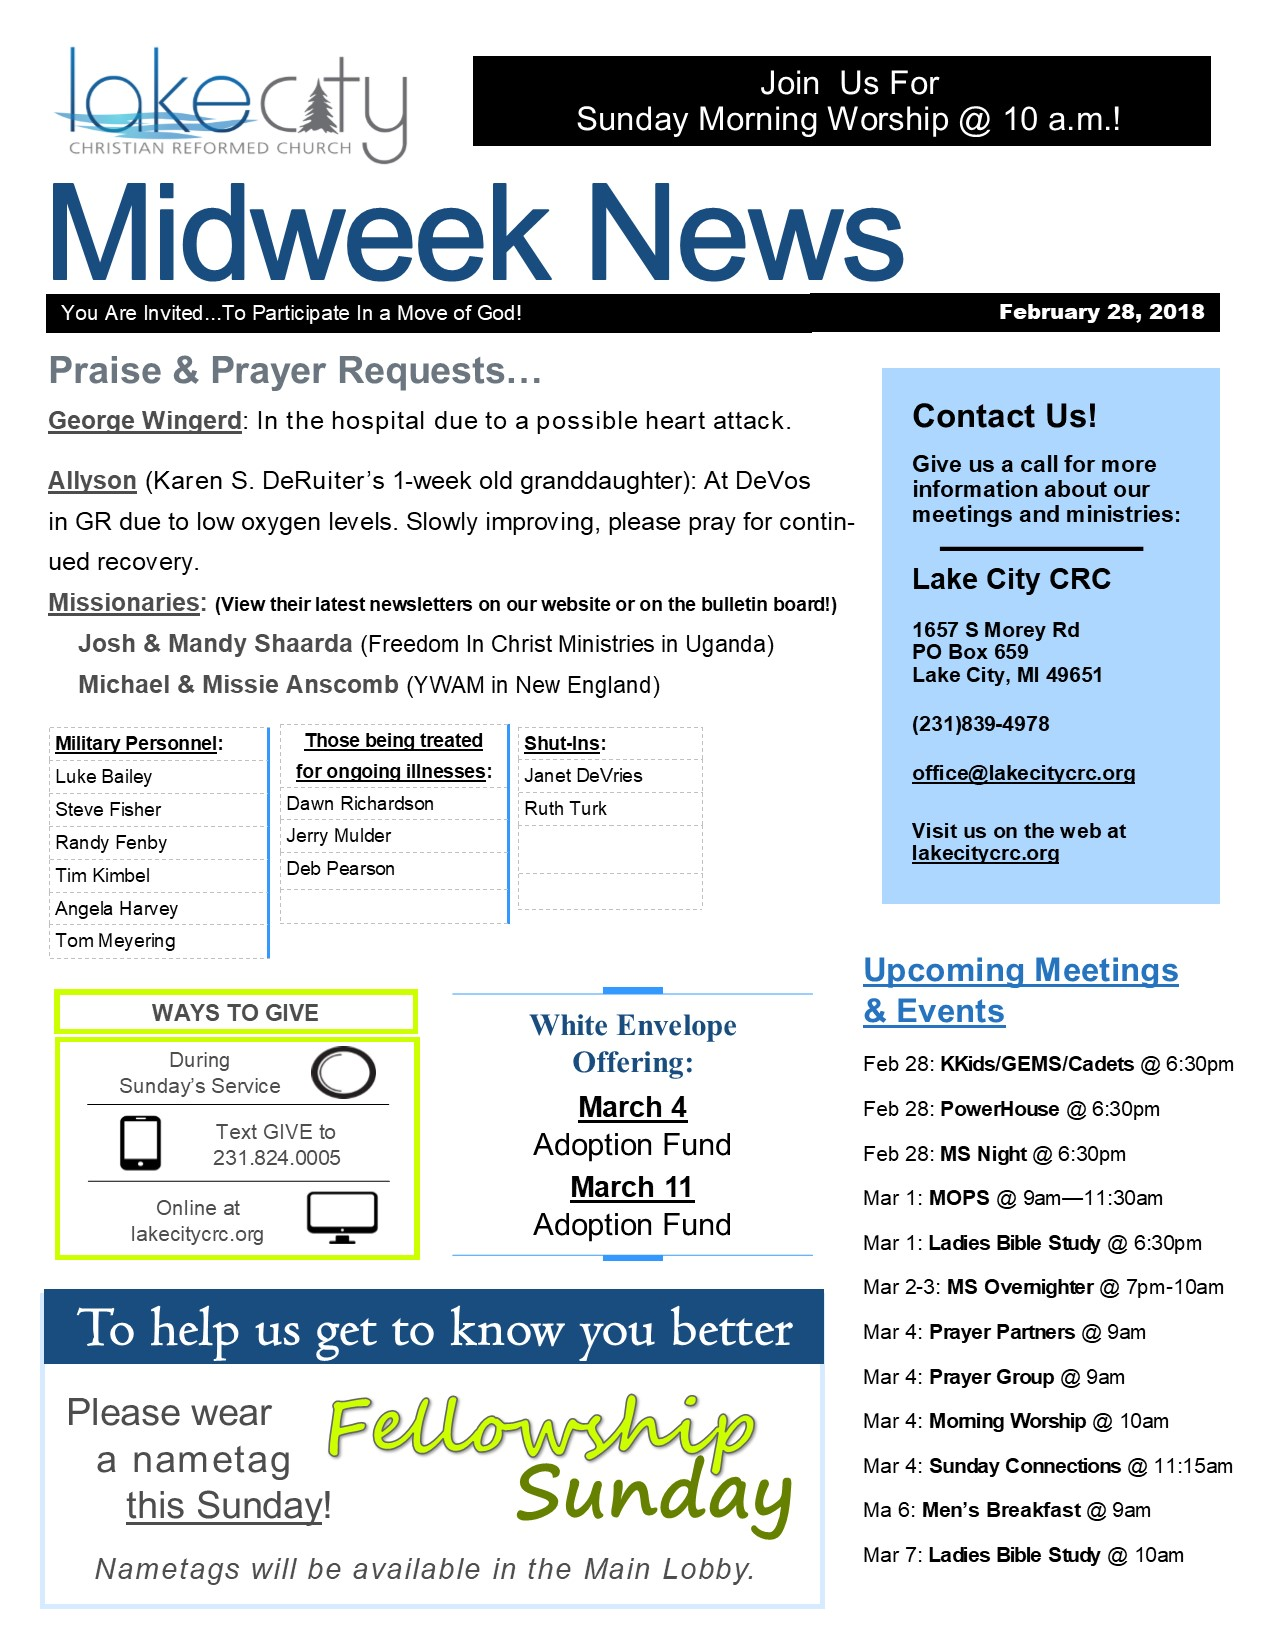 February 28, 2018 Midweek News